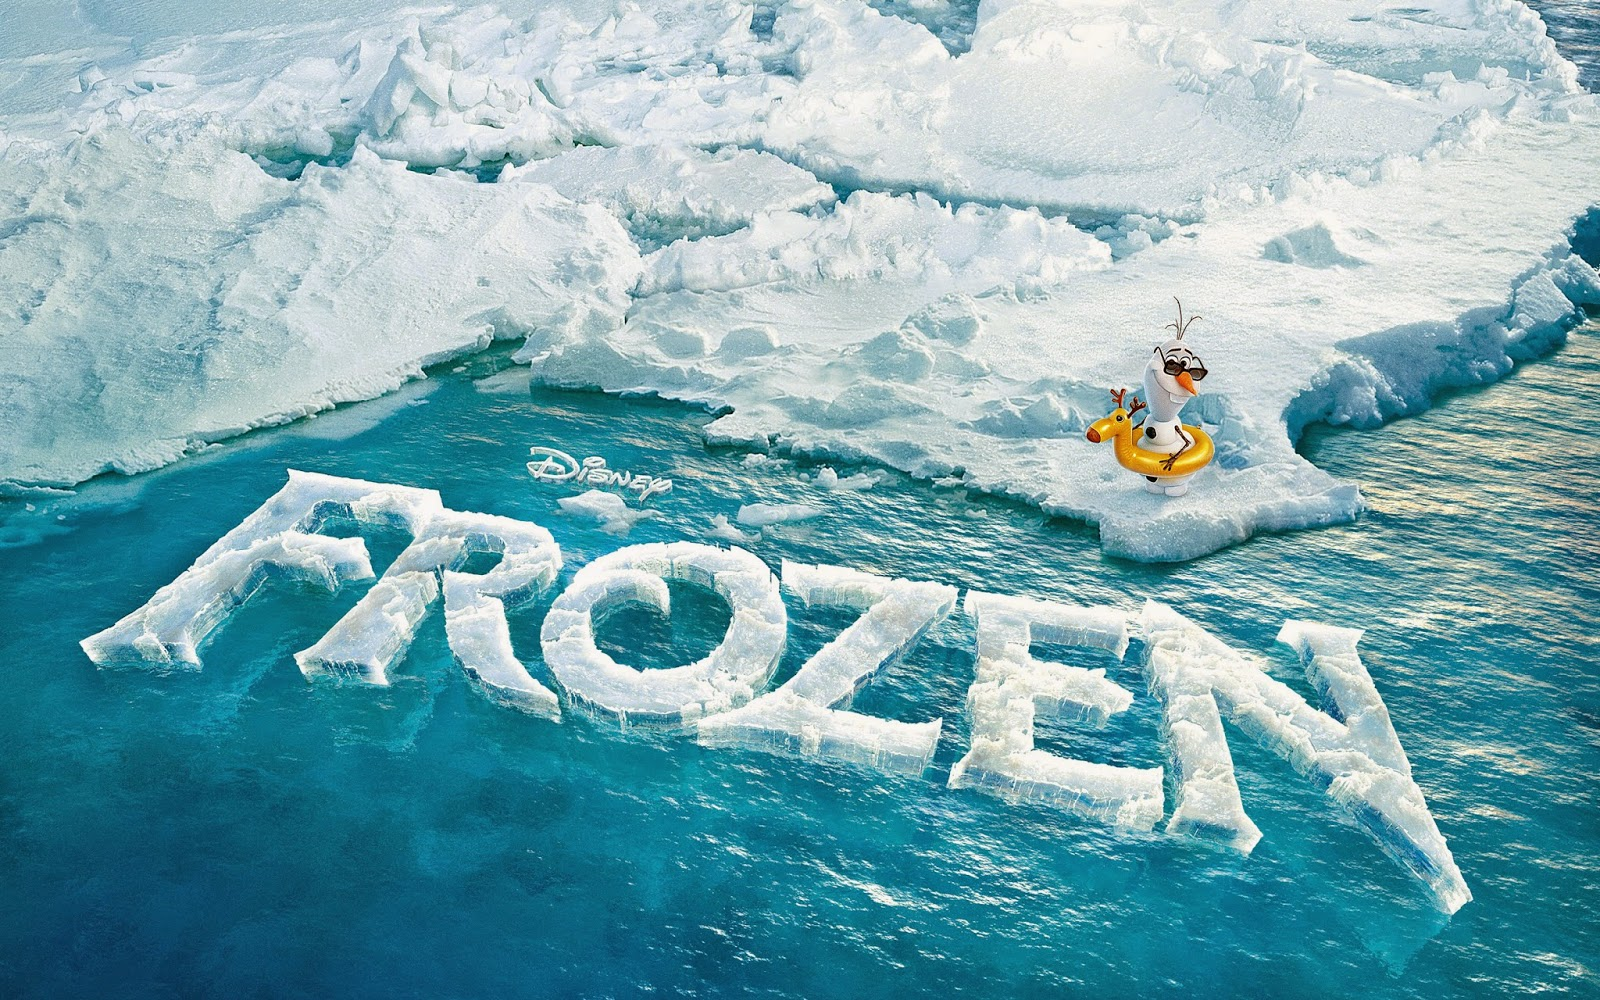 Frozen Images, part 3